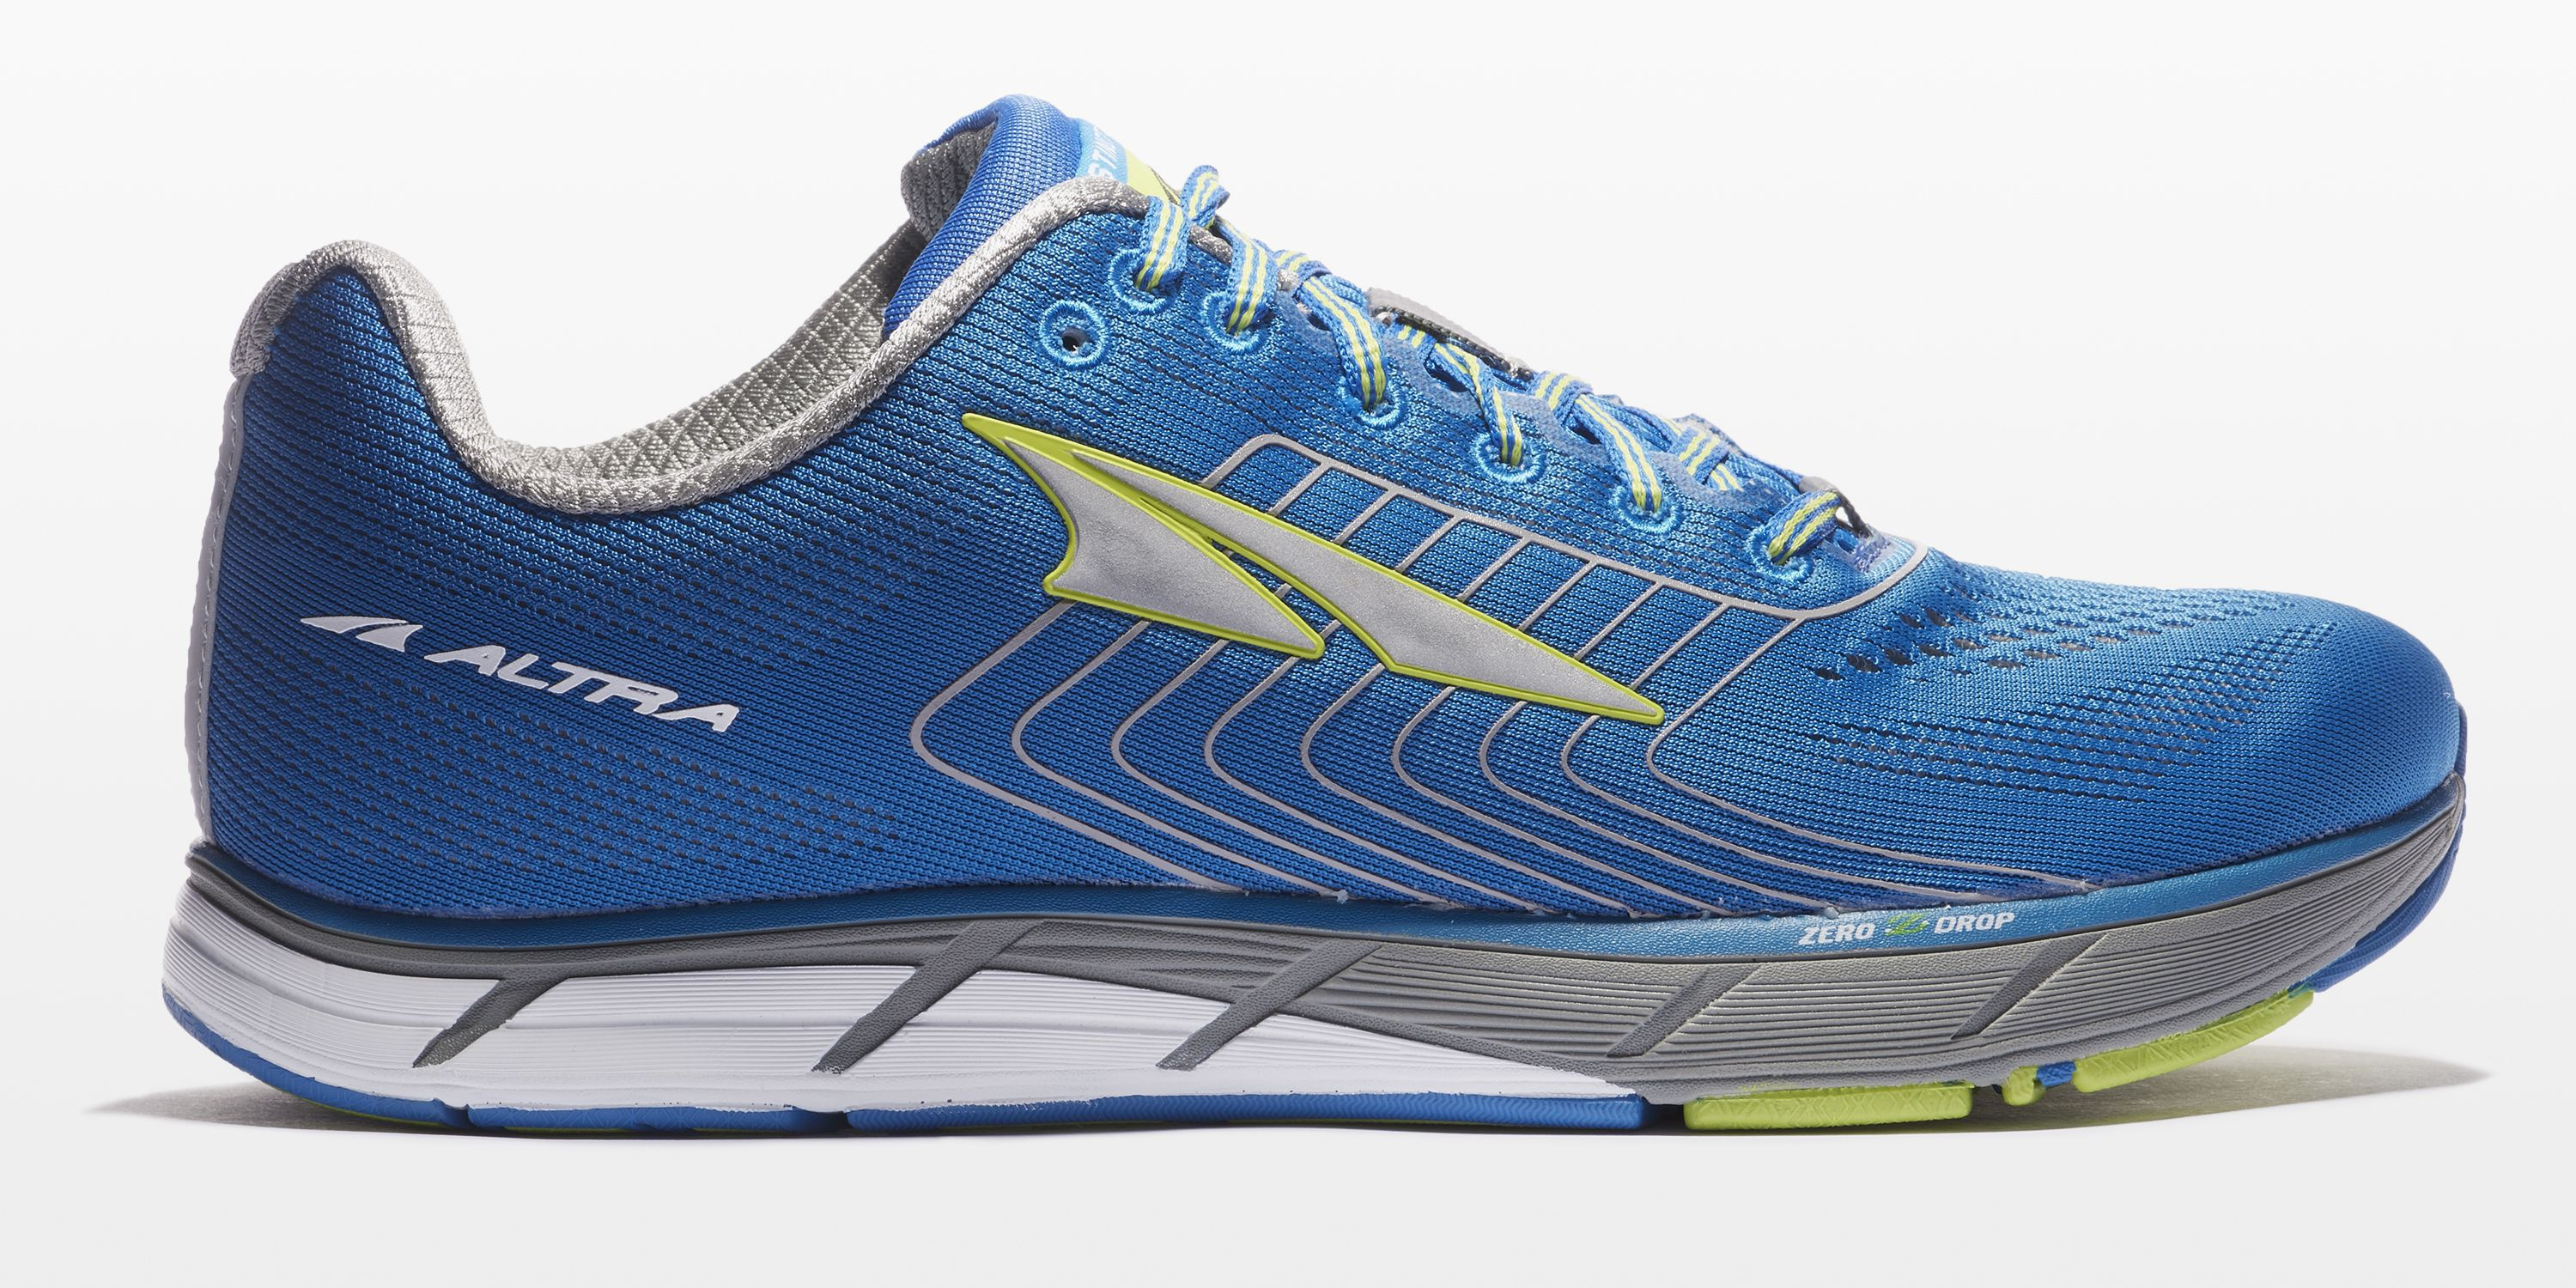 best men's athletic shoes for standing all day